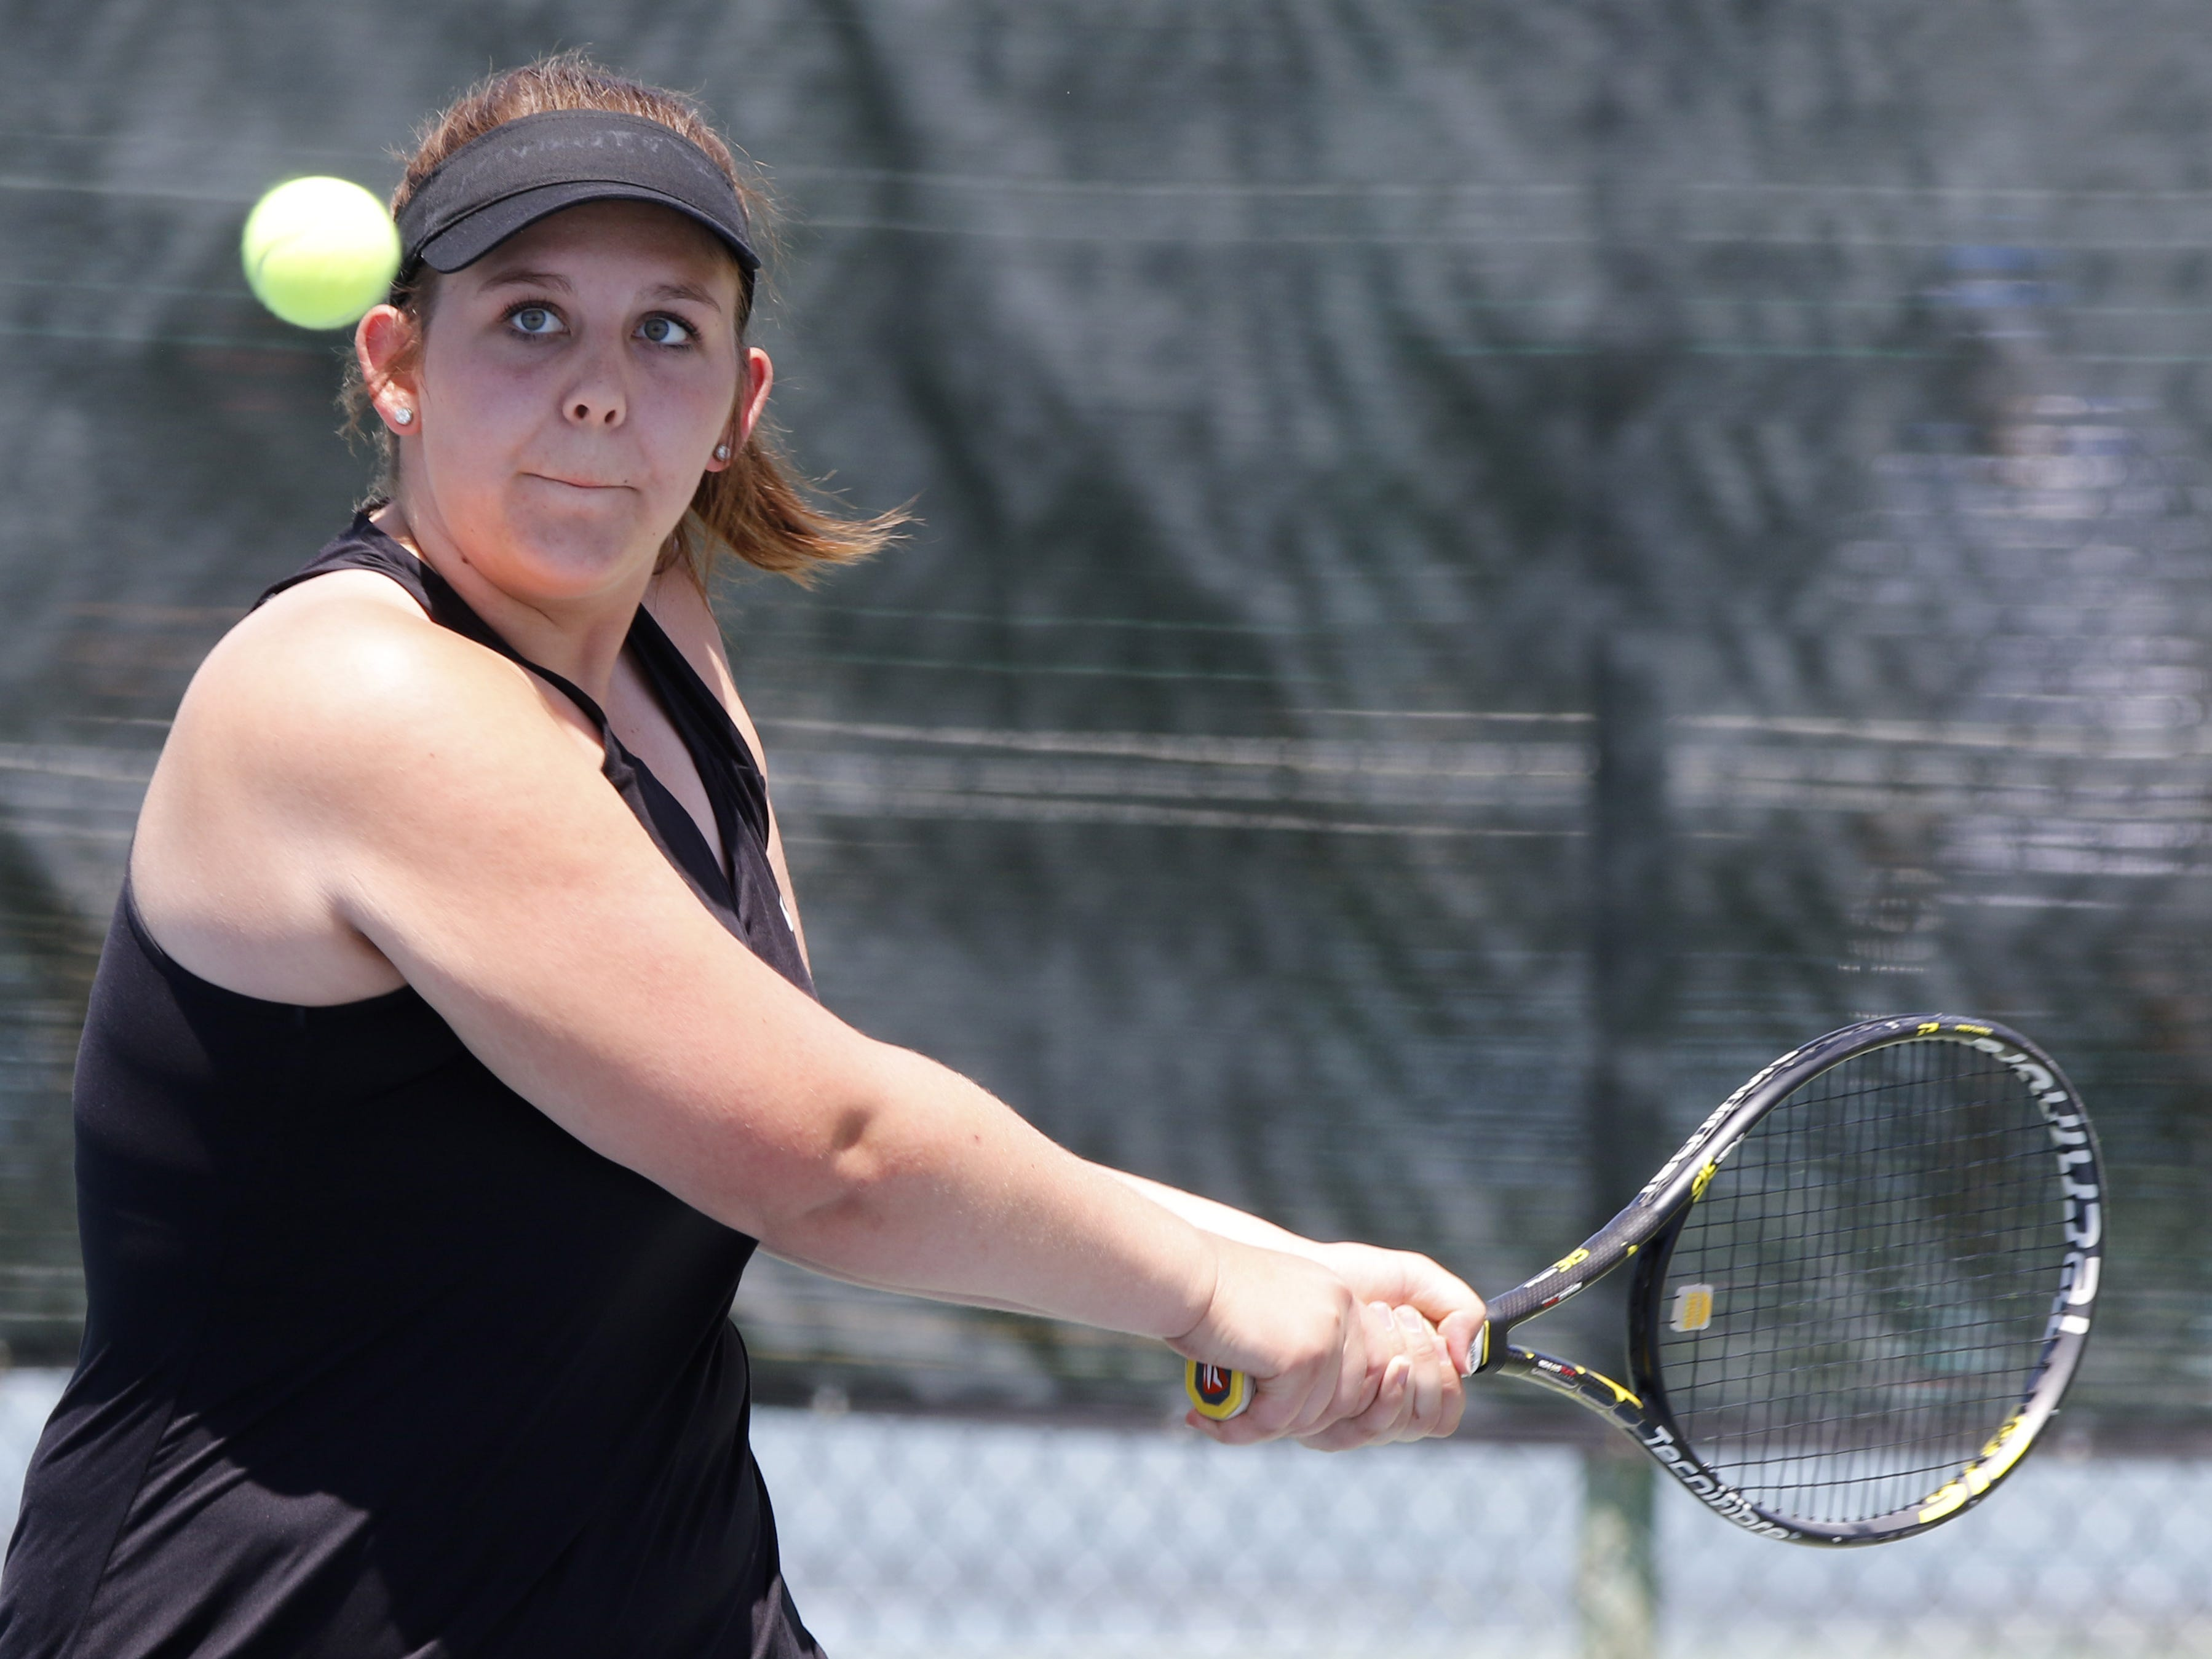 Thatcher's Savanna Turley eyes the ball as she plays Pusch Ridge's Colleen Harris during the Division III tennis team state championship in Glendale, Arizona, May 04, 2019.